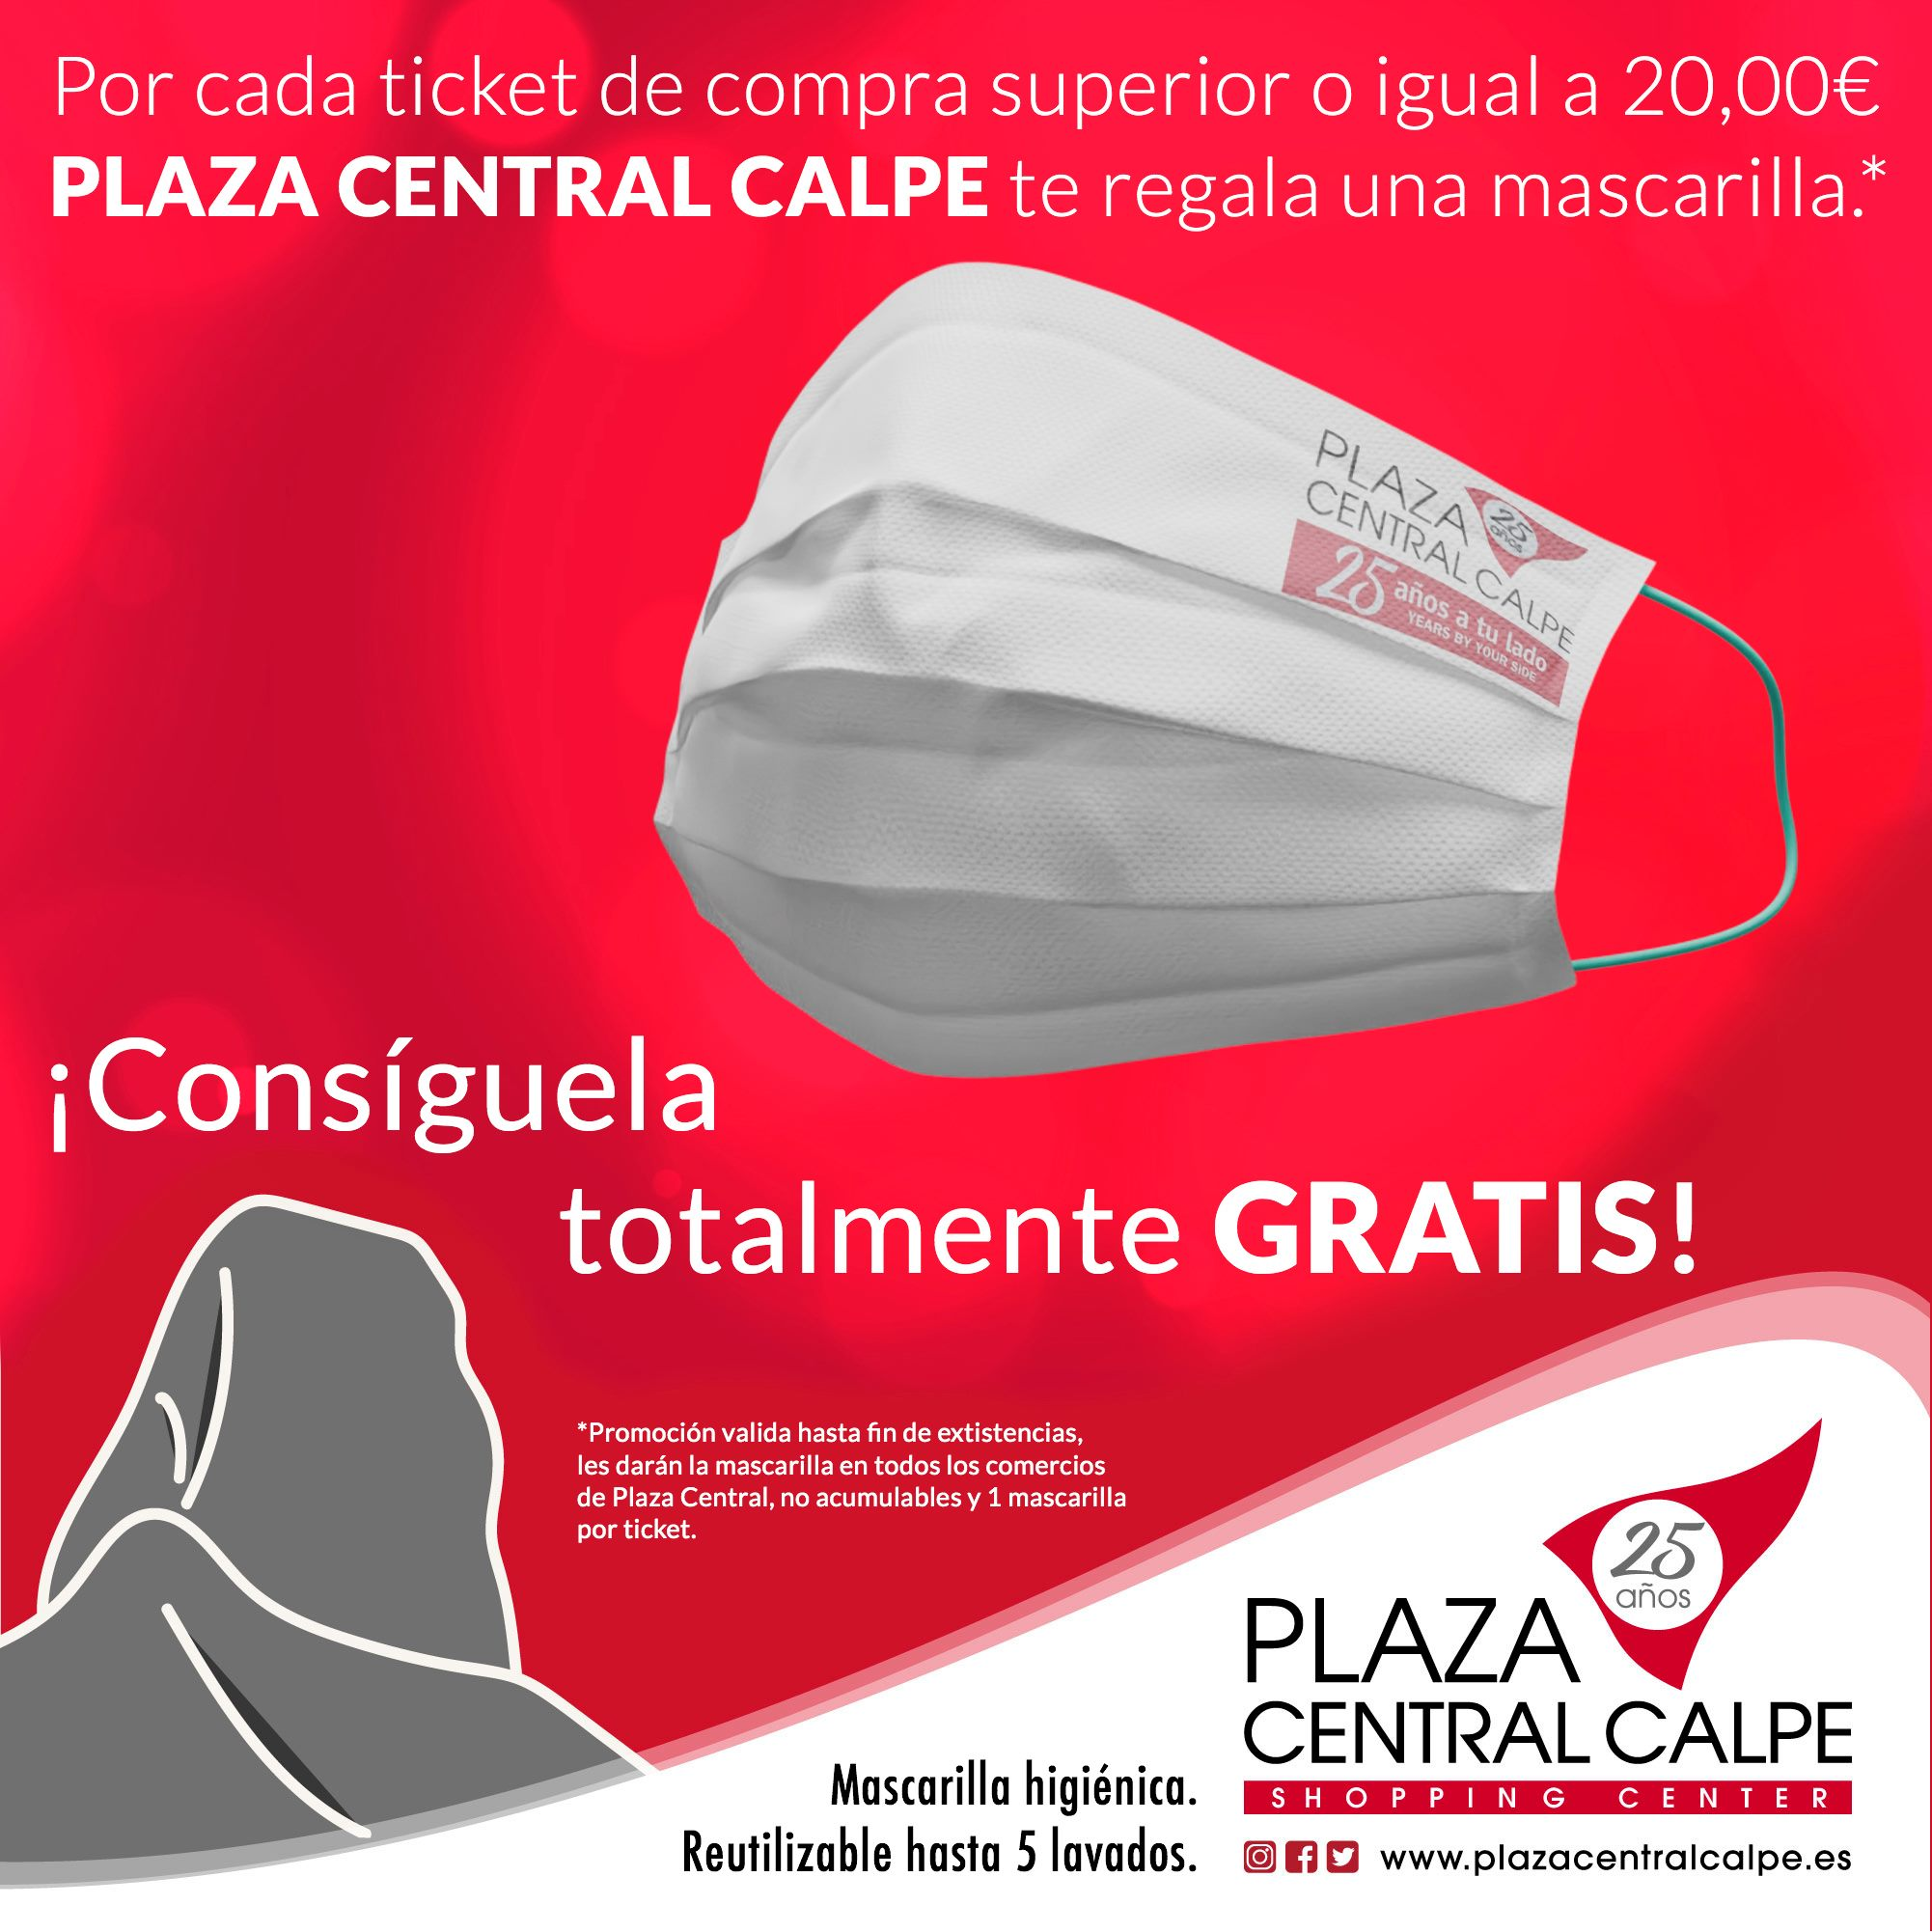 Consigue Gratis la mascarilla de Plaza Central Calpe